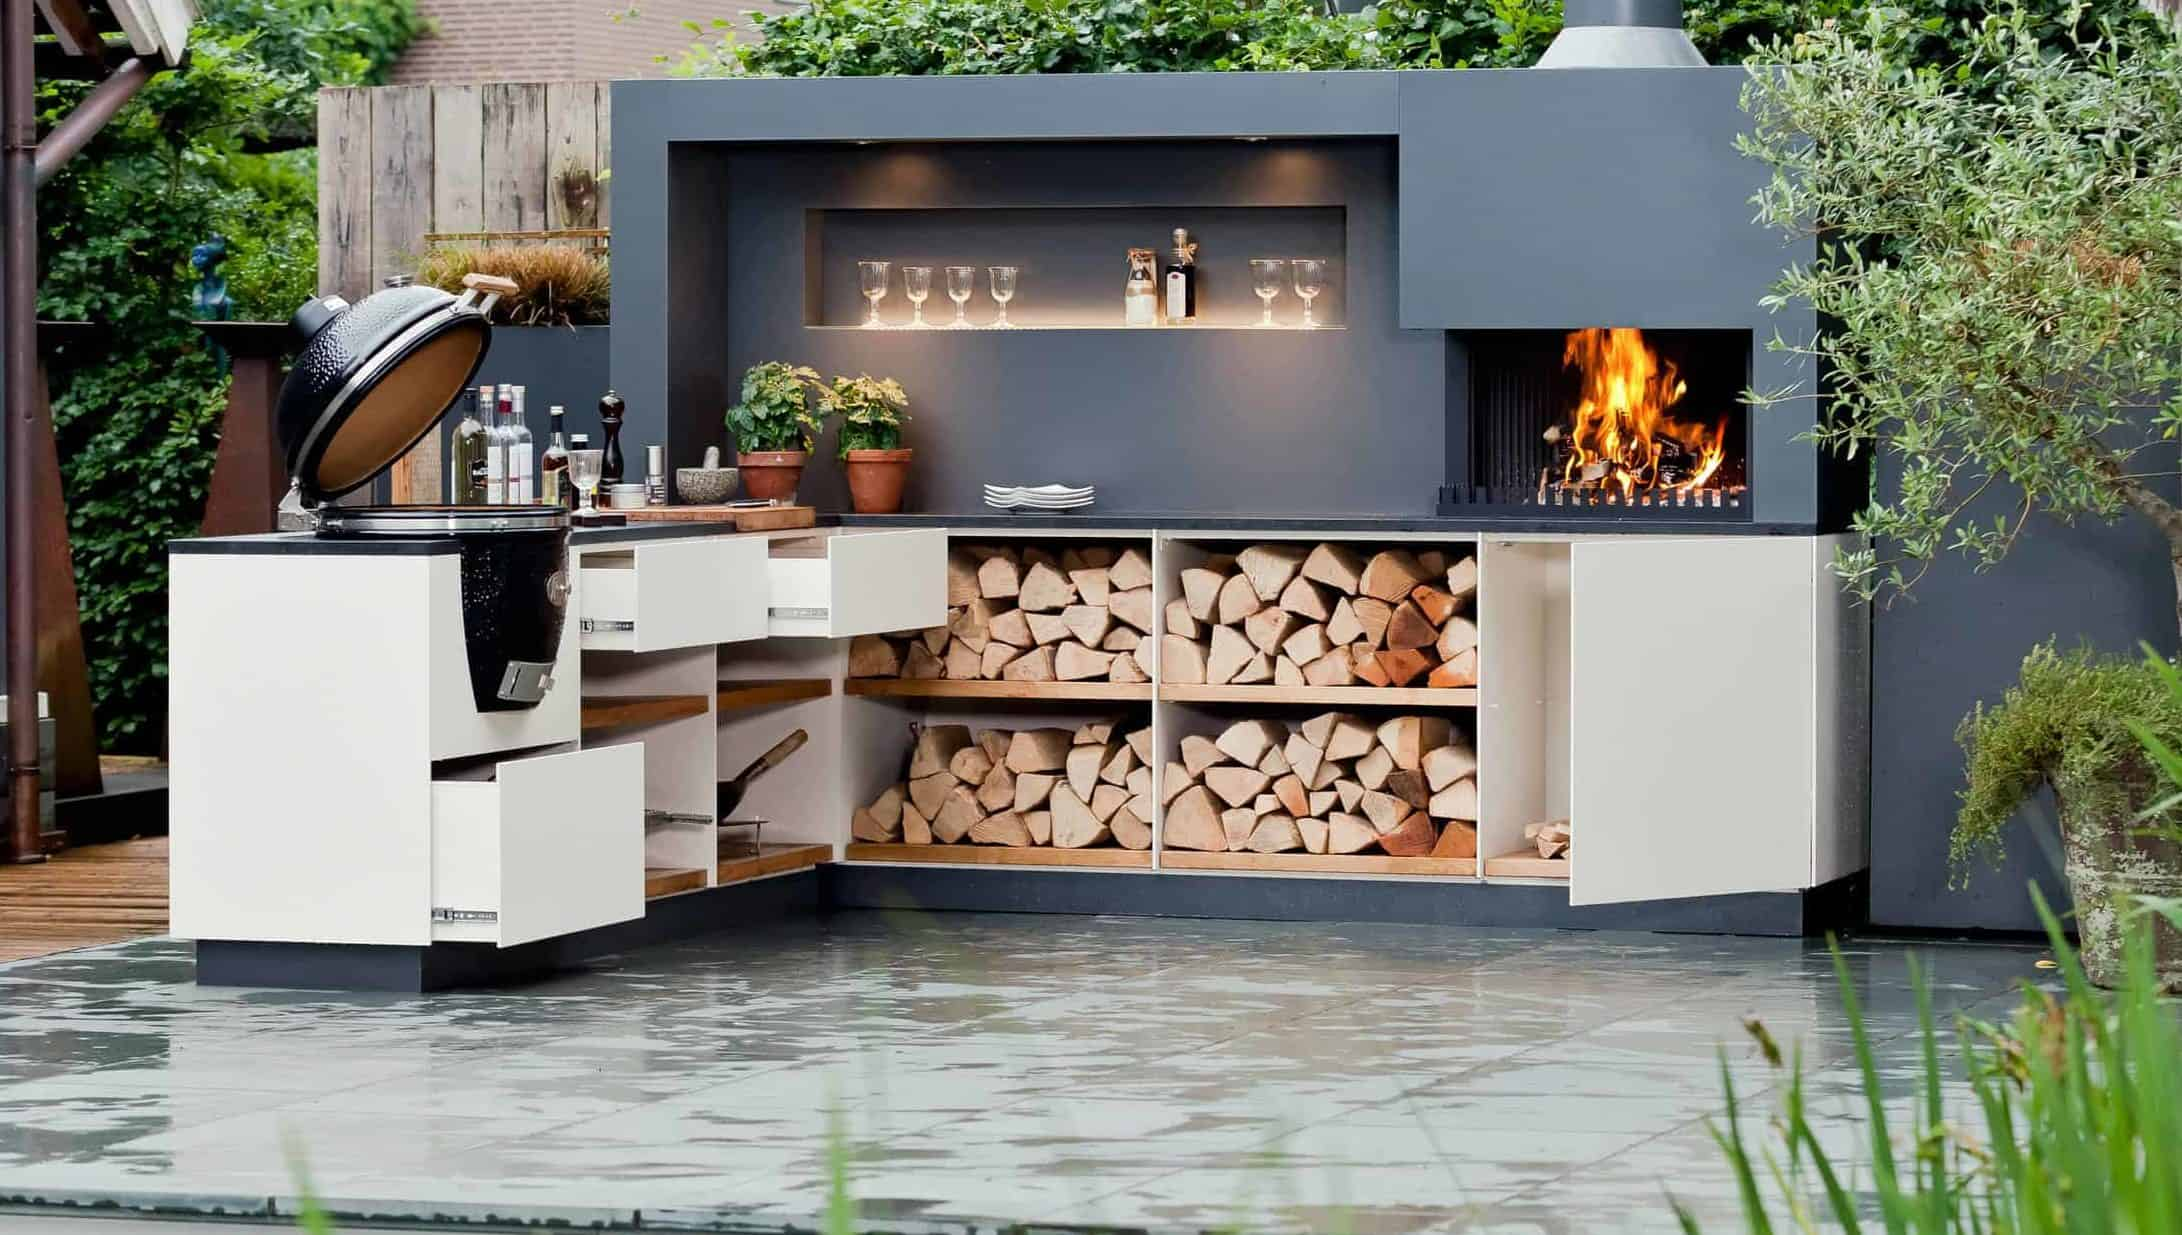 Top 32 Best Outdoor Kitchen Ideas And Designs New Outdoor